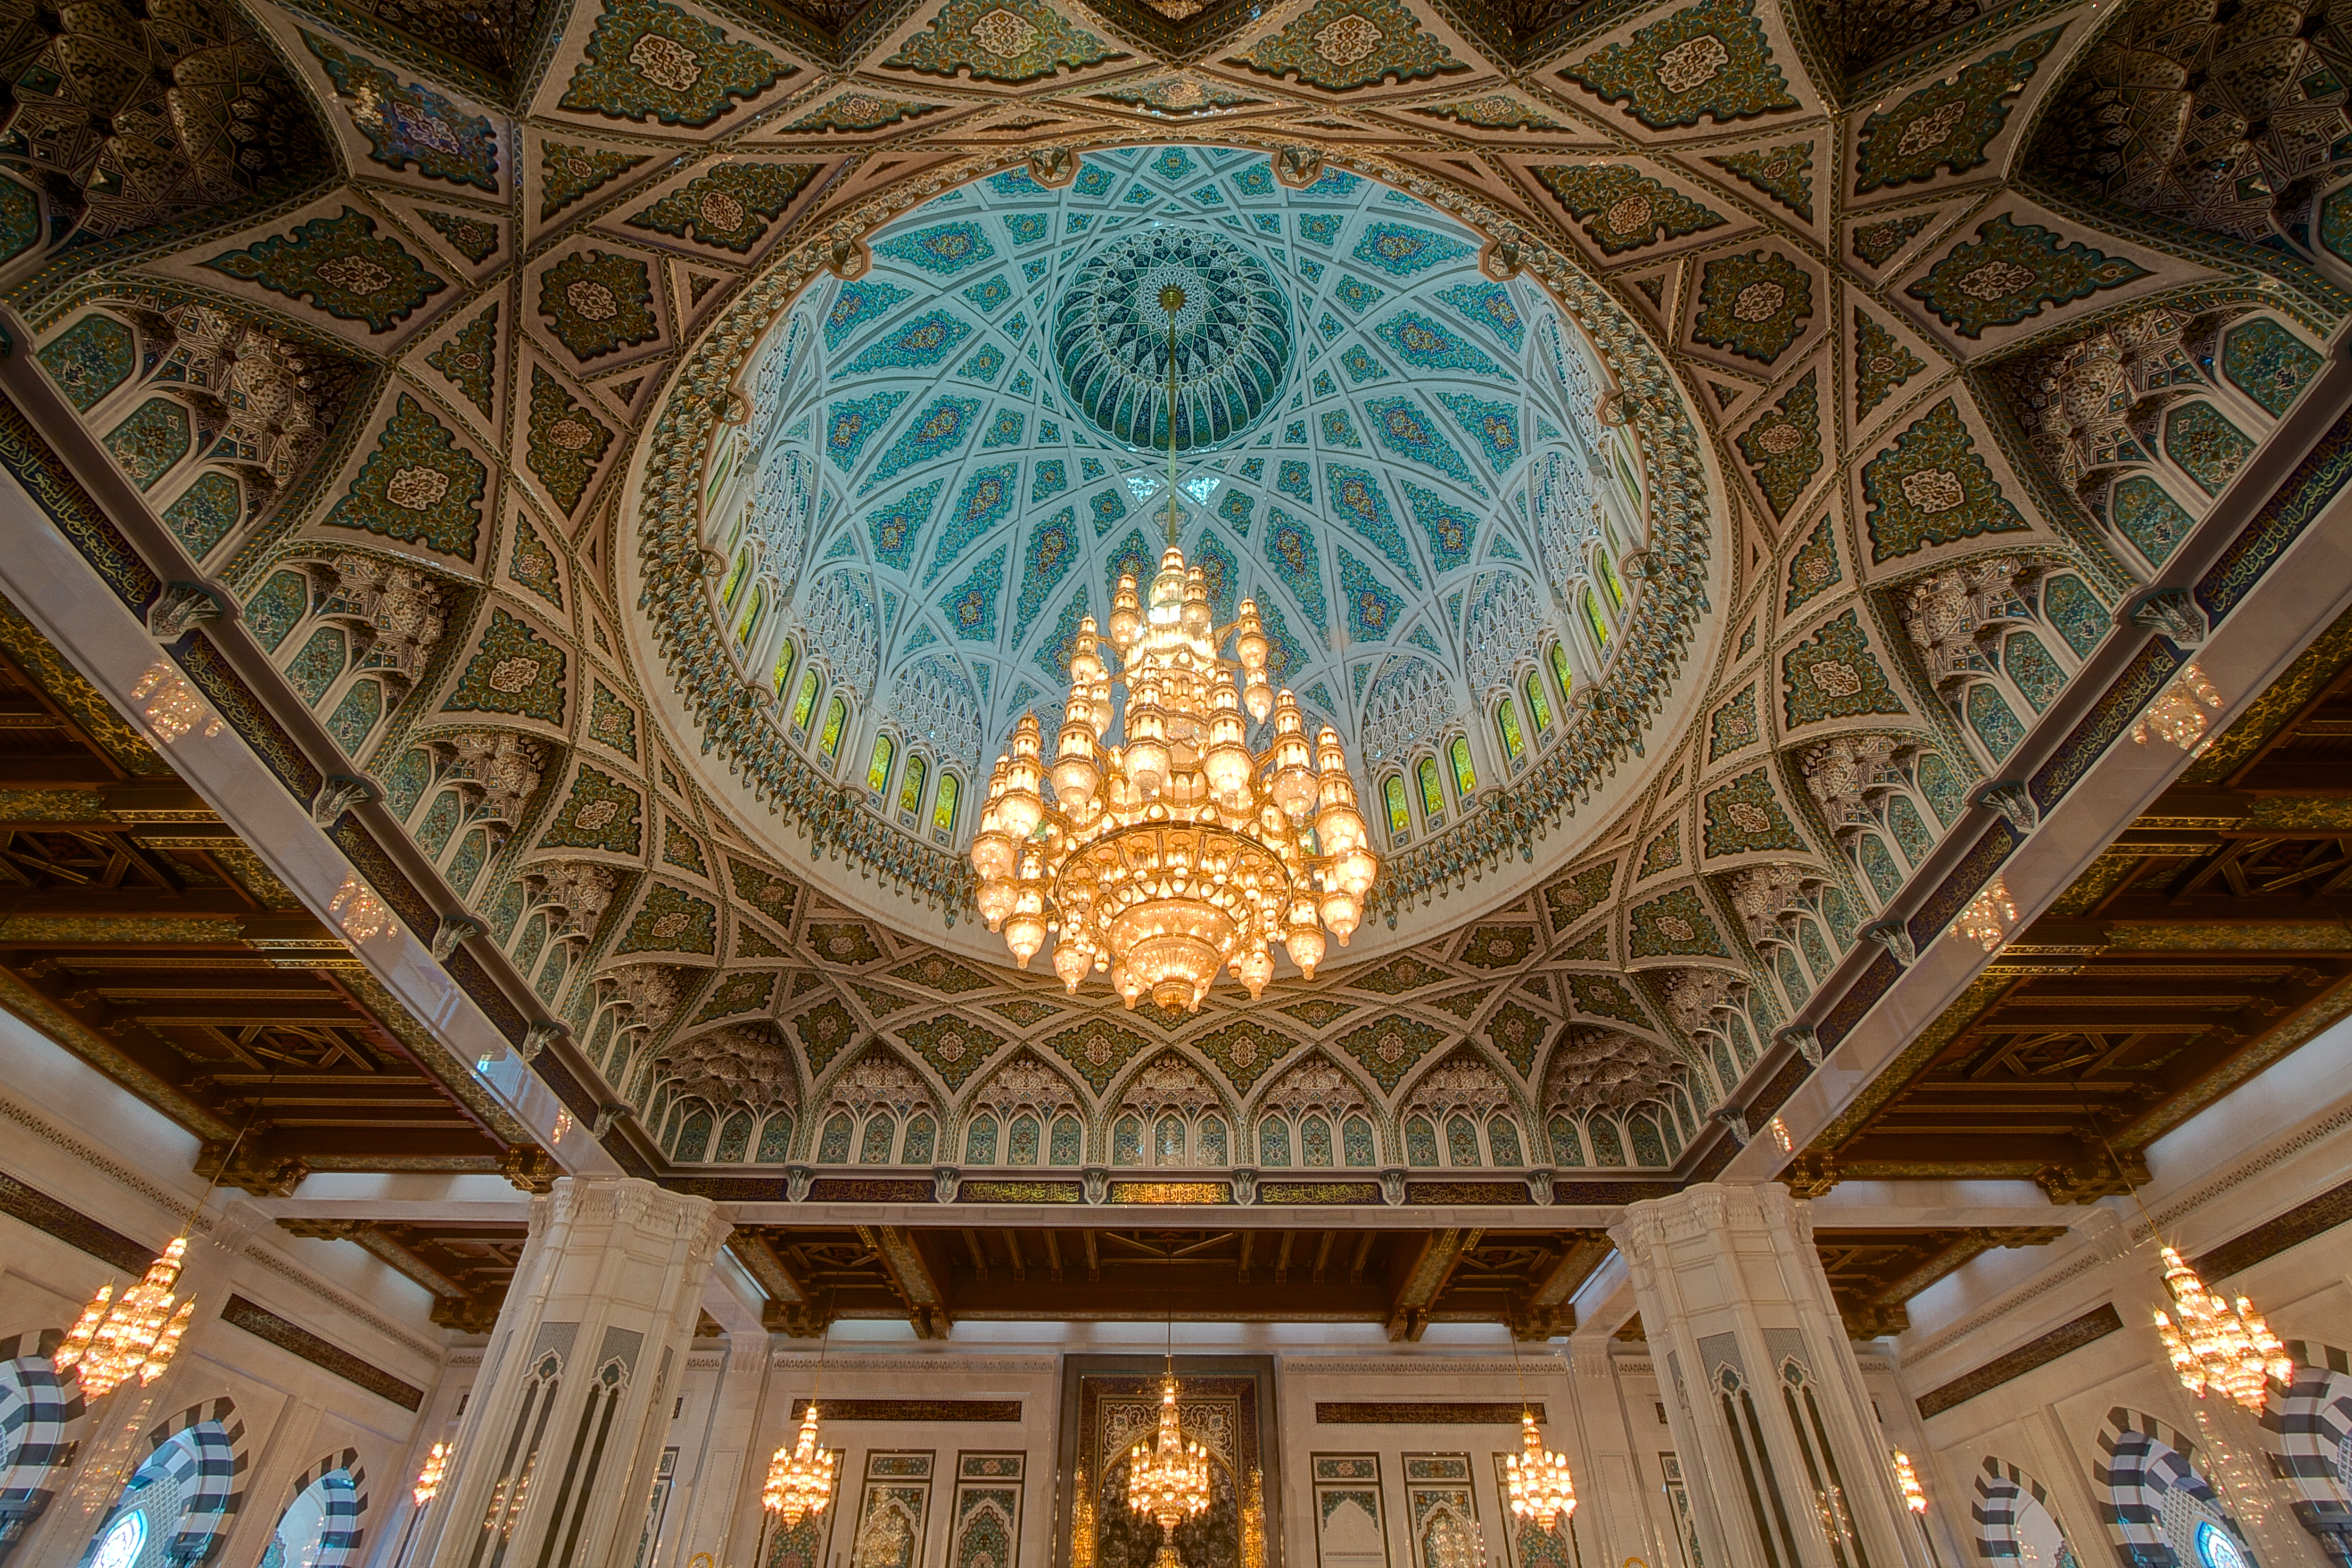 With The World S Second Largest Carpet And Chandelier Sultan Qaboos Grand Mosque Is A Place Worth Visiting In Mu Oman